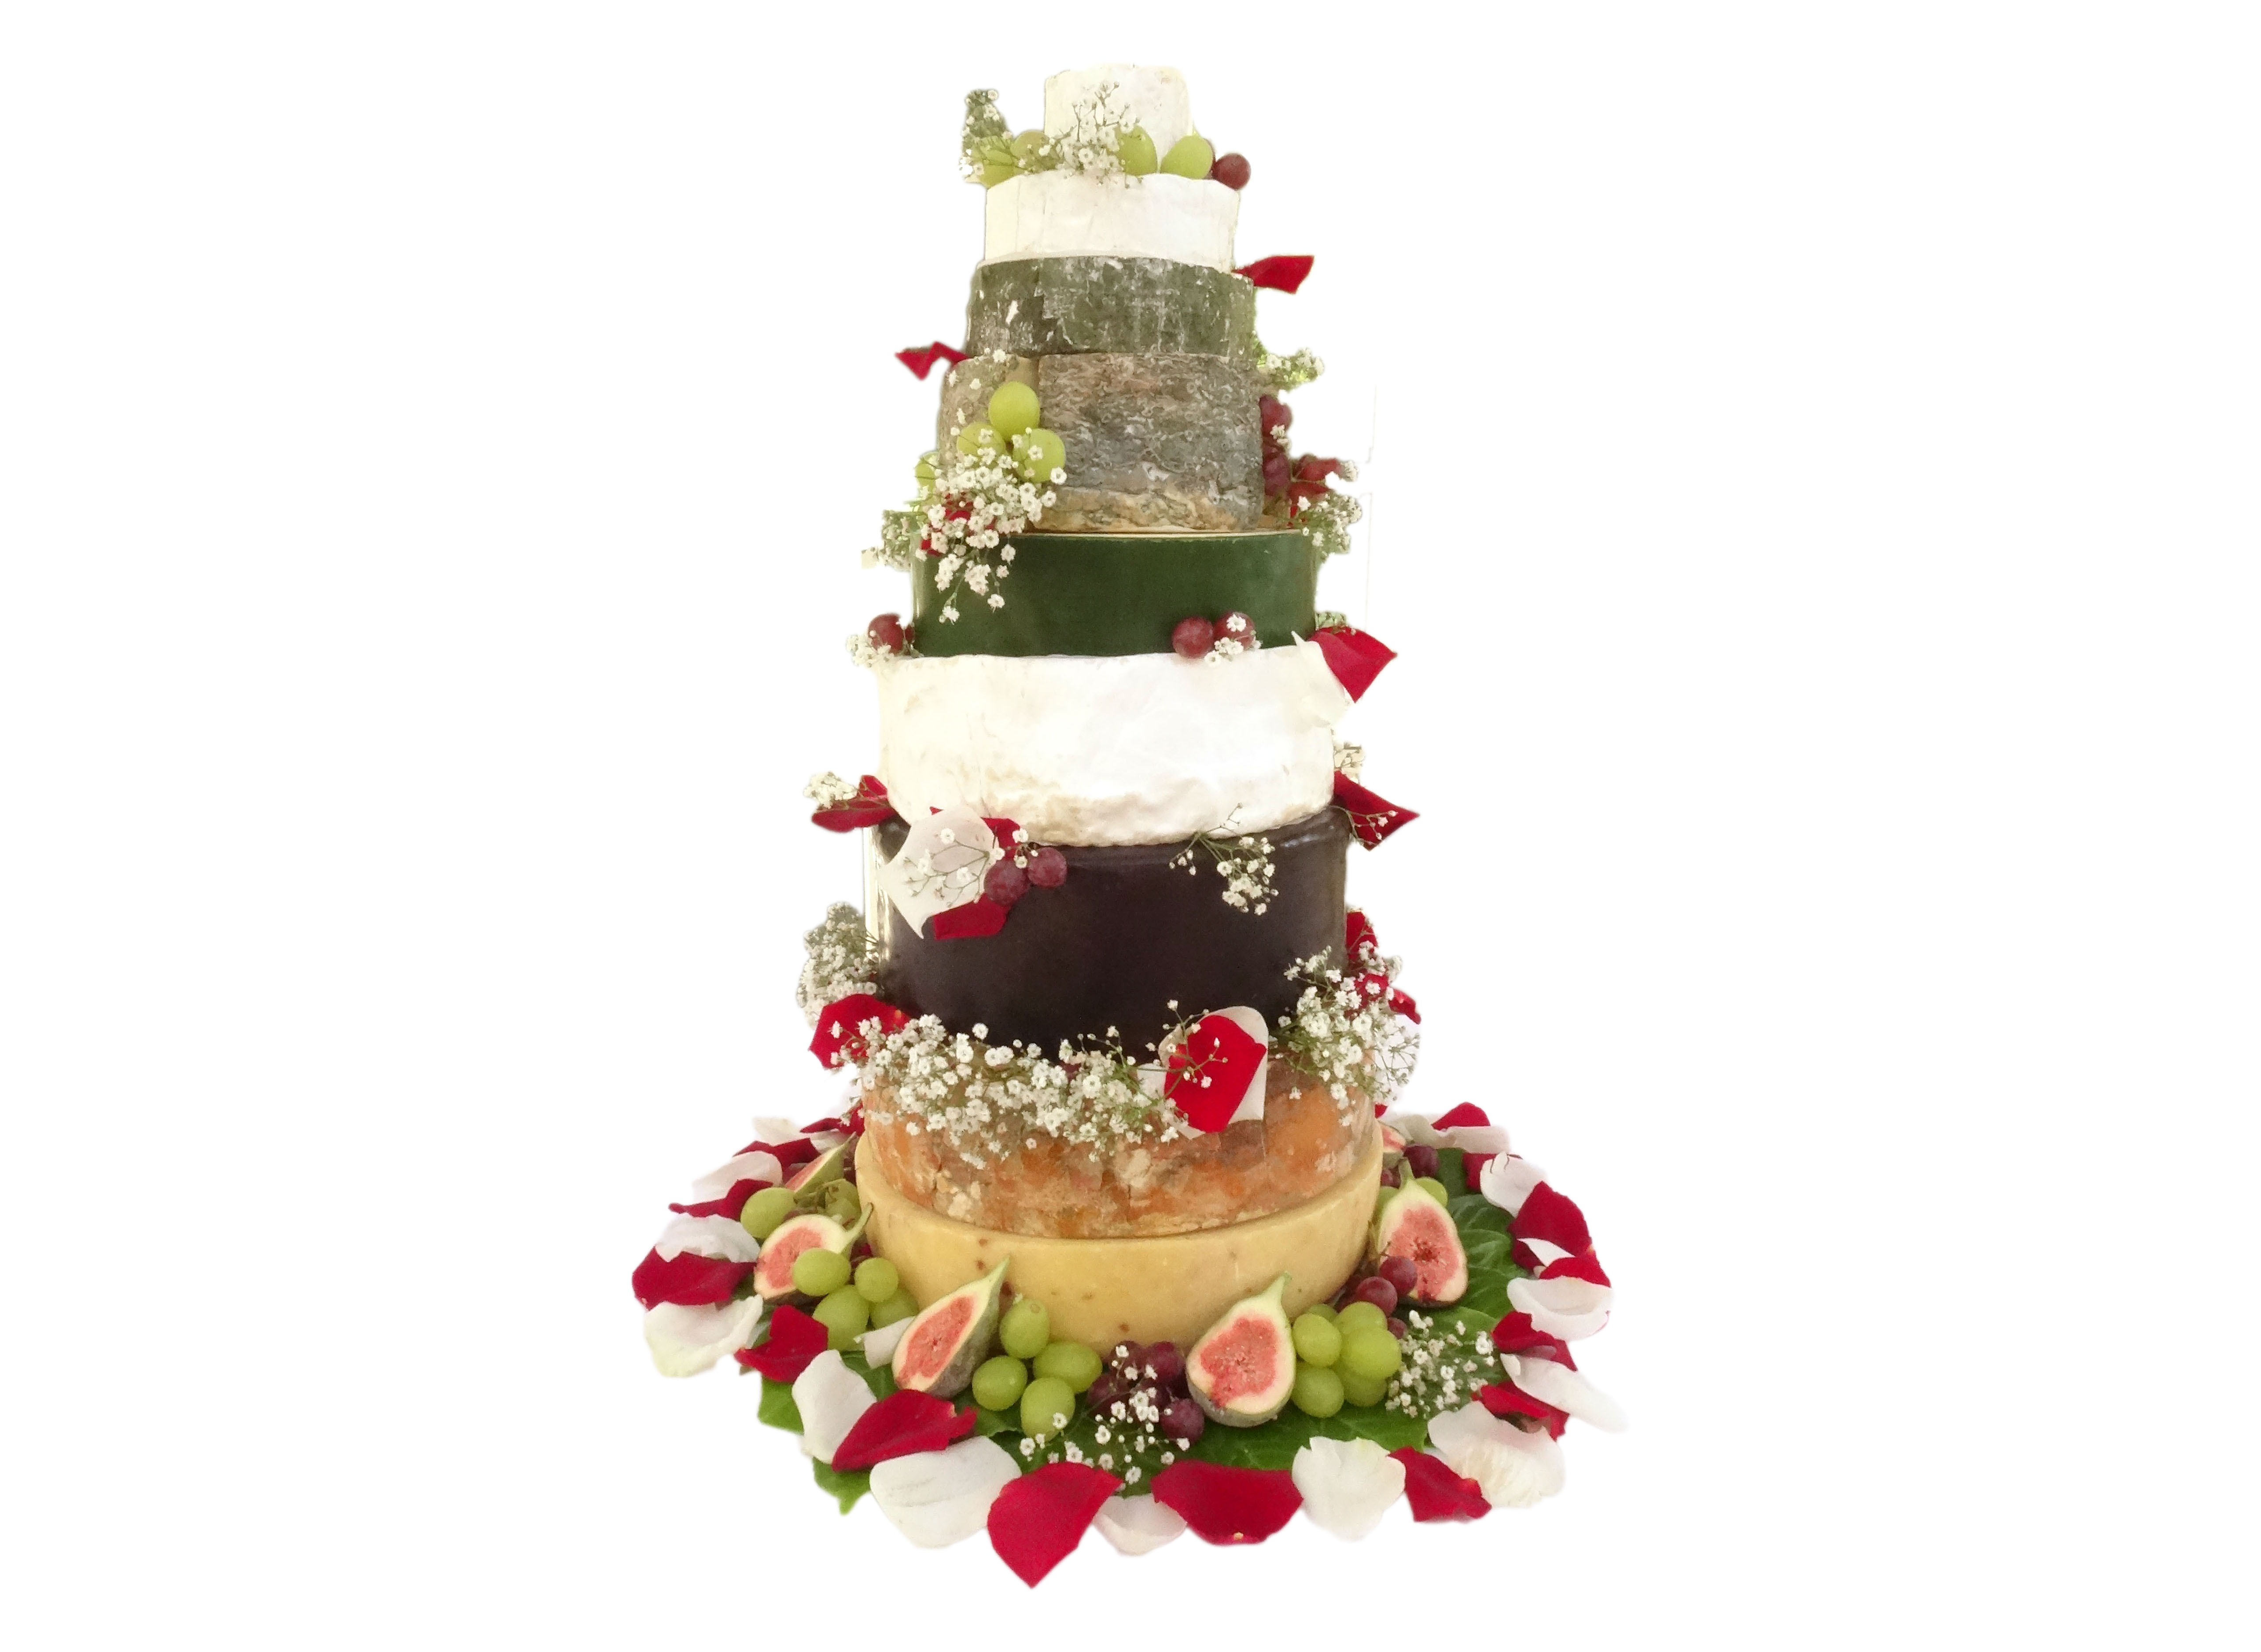 Otters Cheese Celebration Cake Example | Otters Fine Foods